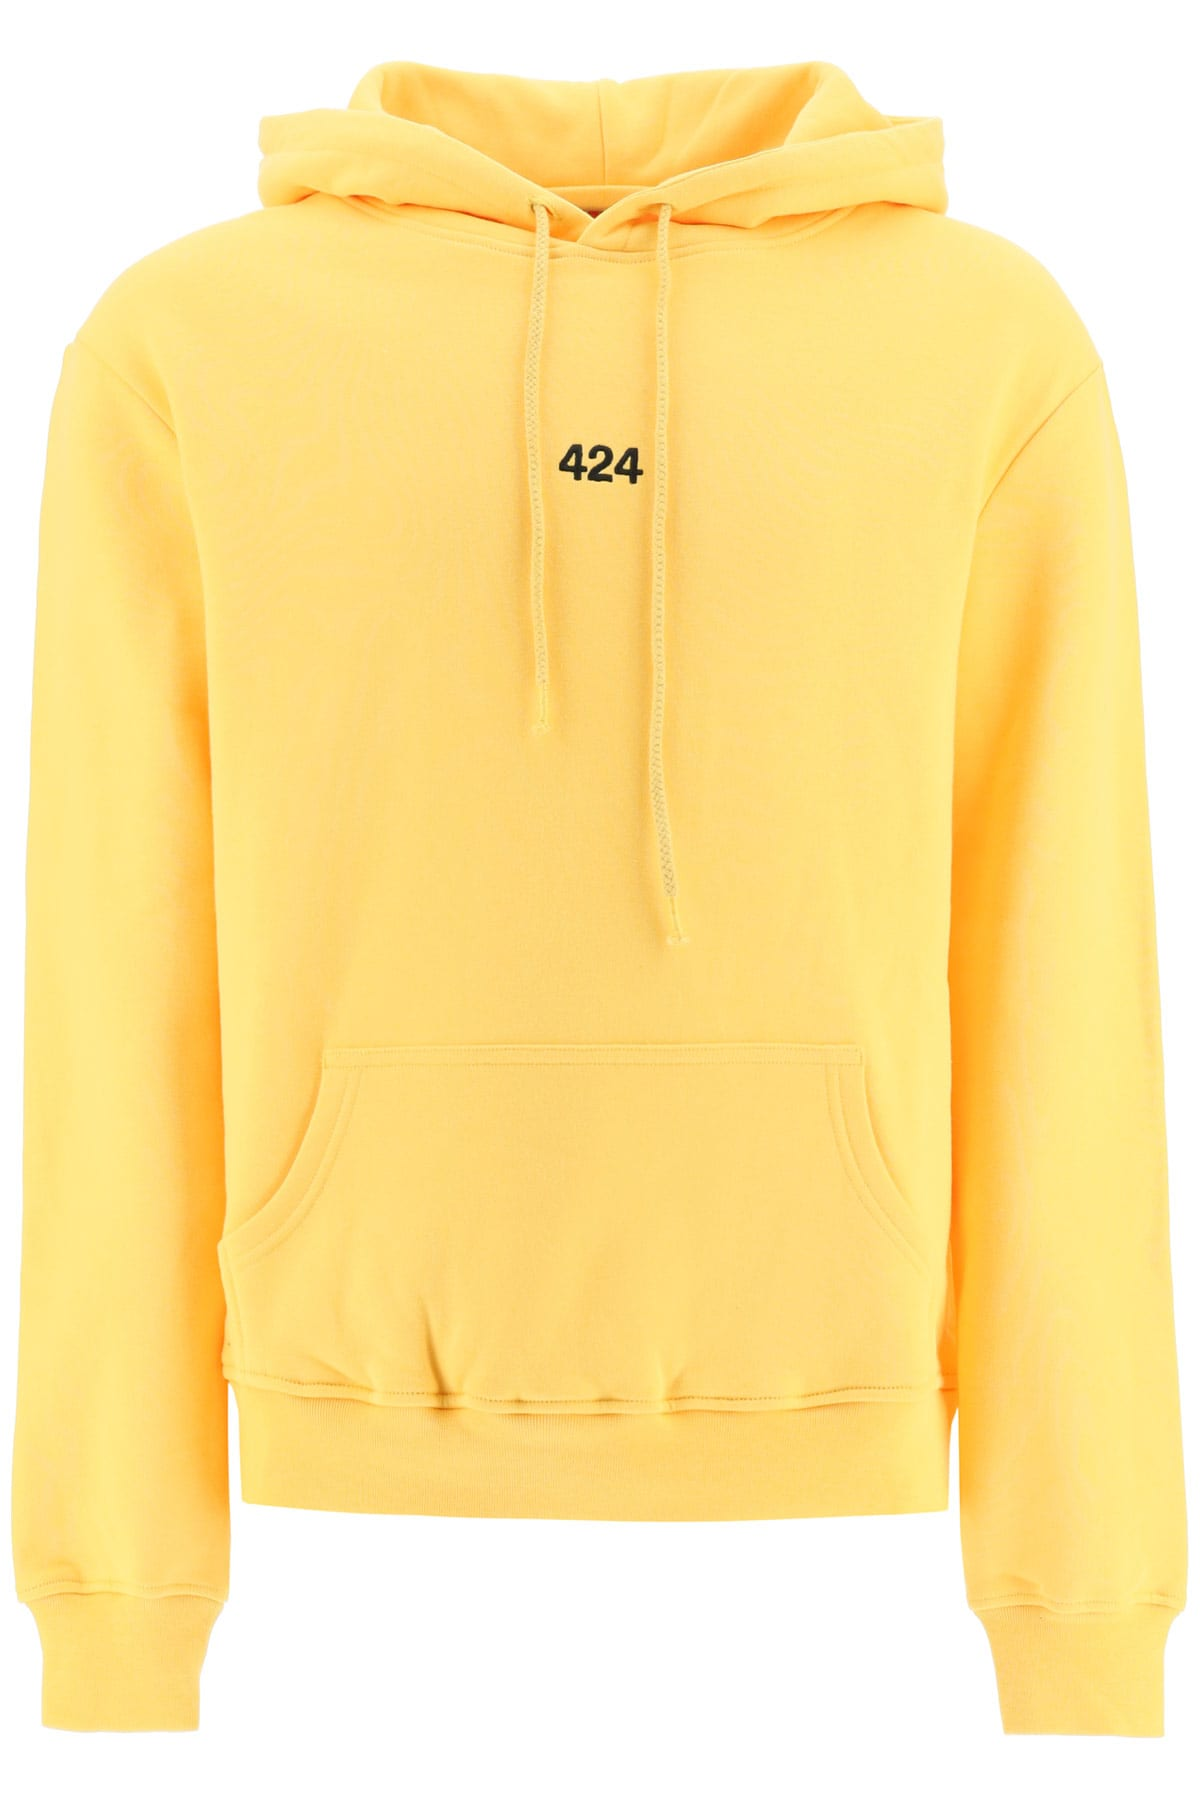 FourTwoFour on Fairfax Hooded Sweatshirt With Logo Embroidery